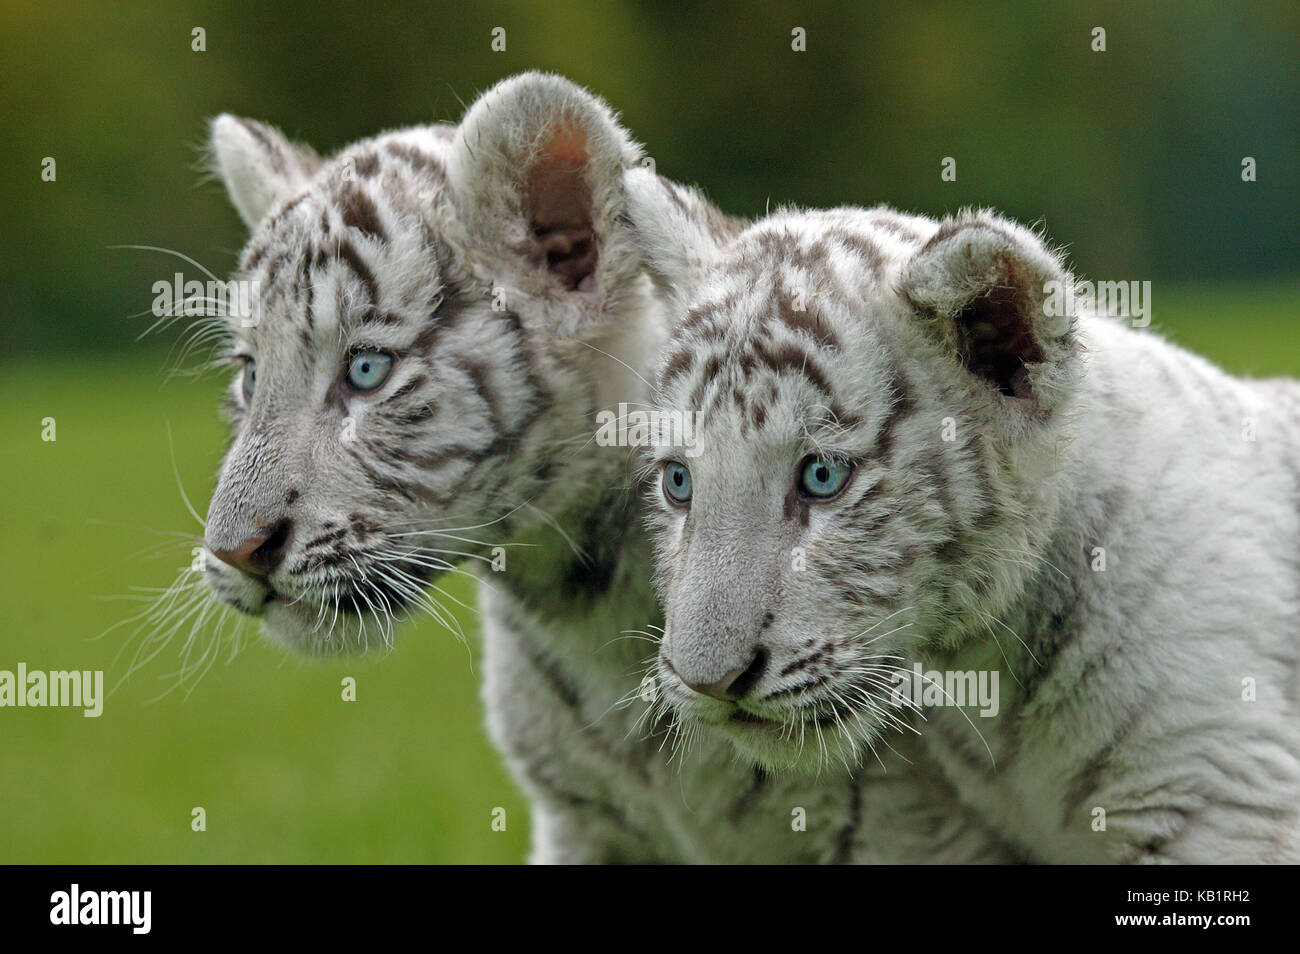 White tigers, Panthera tigris, two young animals, outside, portrait, - Stock Image